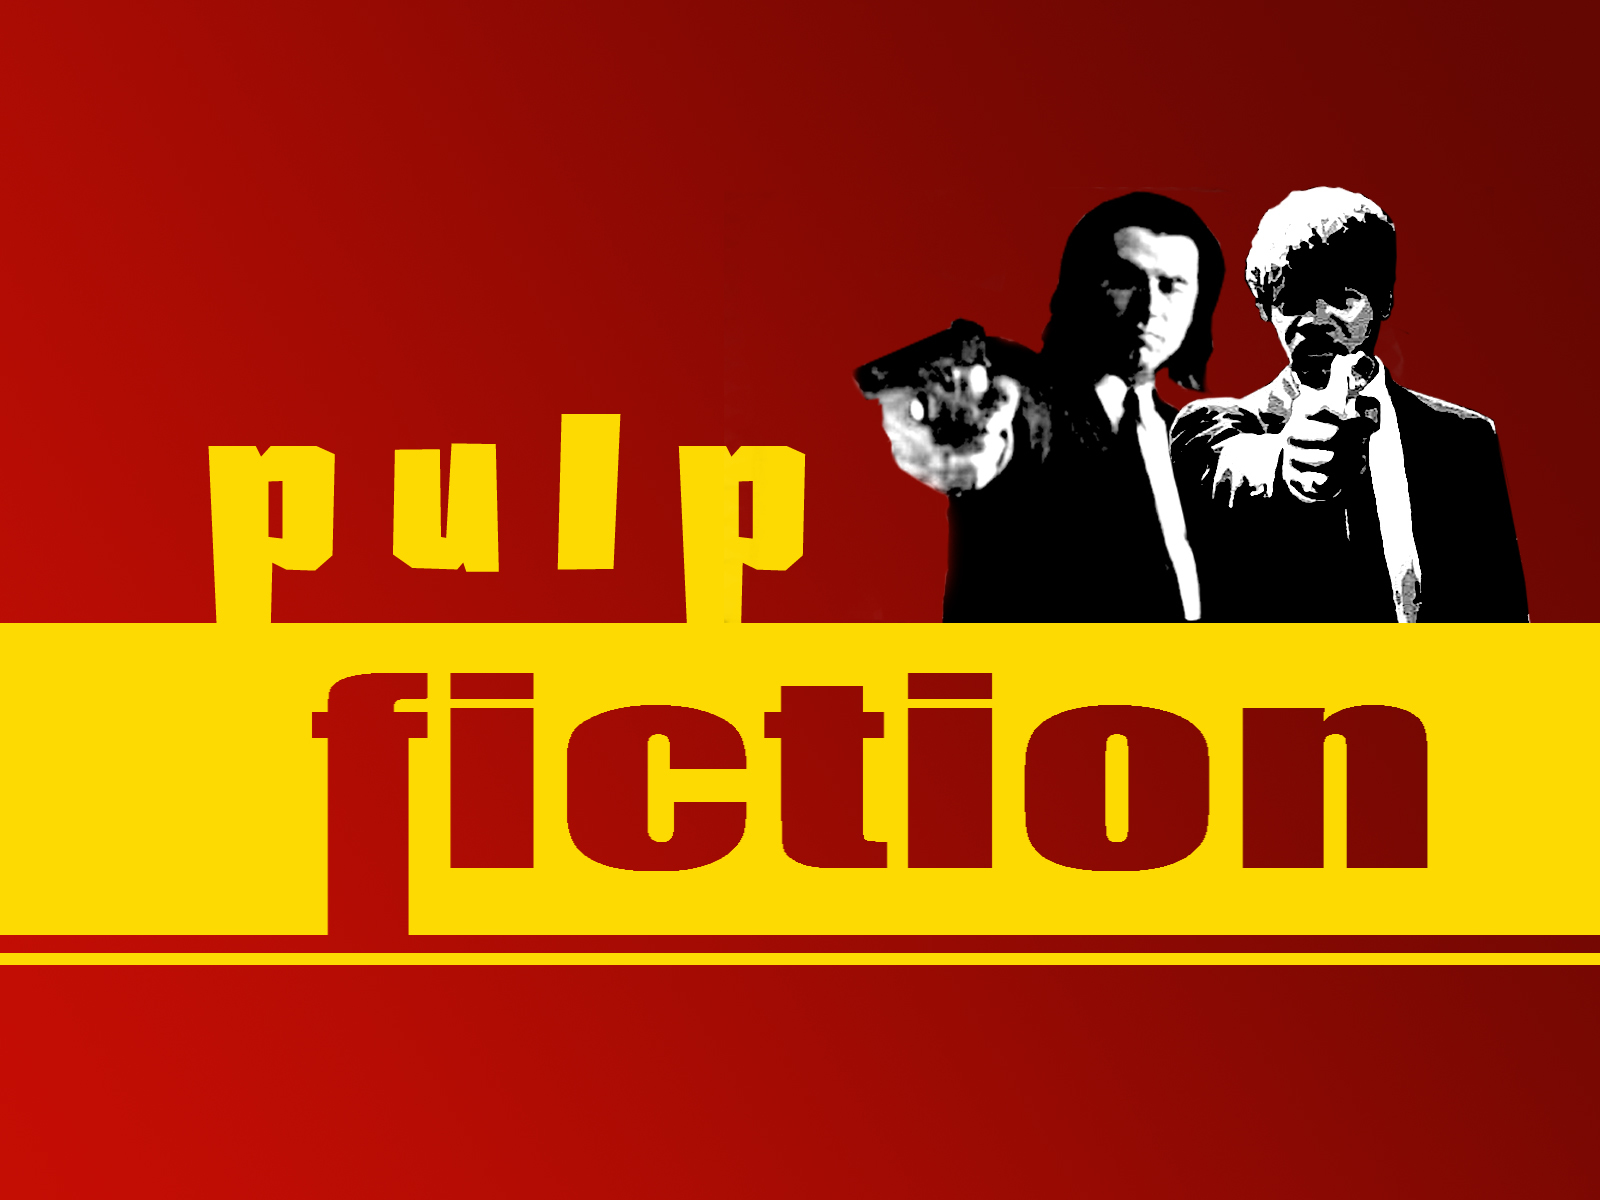 pulp fiction thematic structure The key difference between these two aspects of plot is that there is an internal logic to the plot's structure from pulp fiction, memento, or remains.